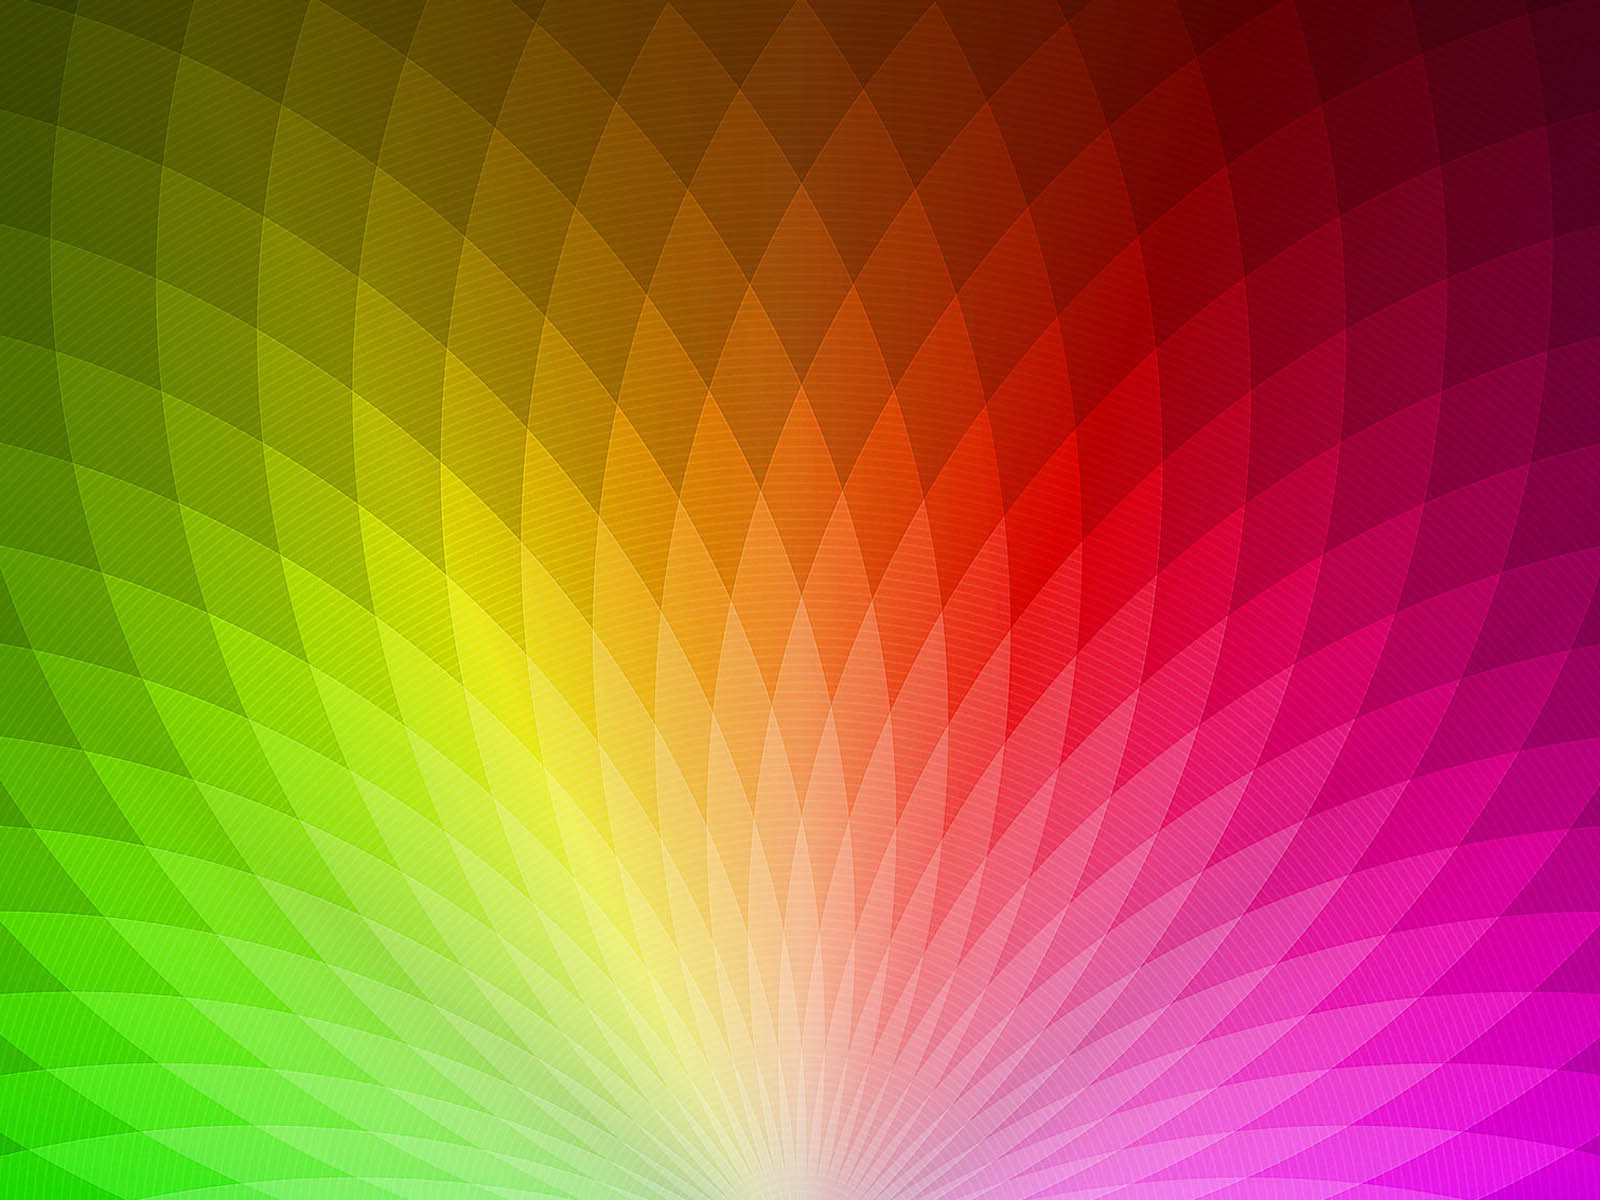 abstract rainbow background wallpaper black - photo #30